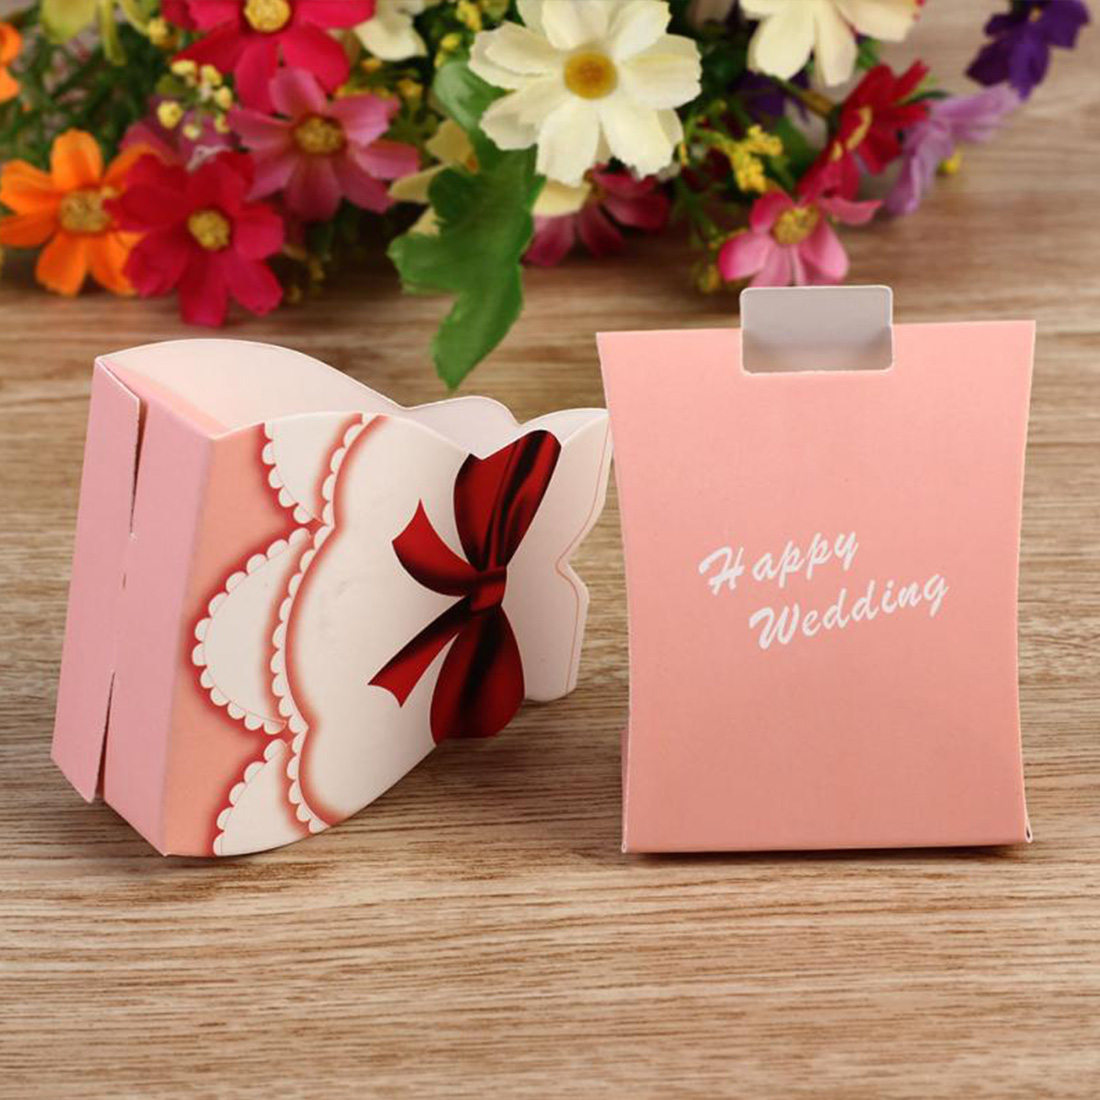 Creative 50pcs Fashion Pink Bride Groom Tuxedo Dress Gown Shape Wedding Favors Candy Gift Box In Bags Wring Supplies From Home Garden On